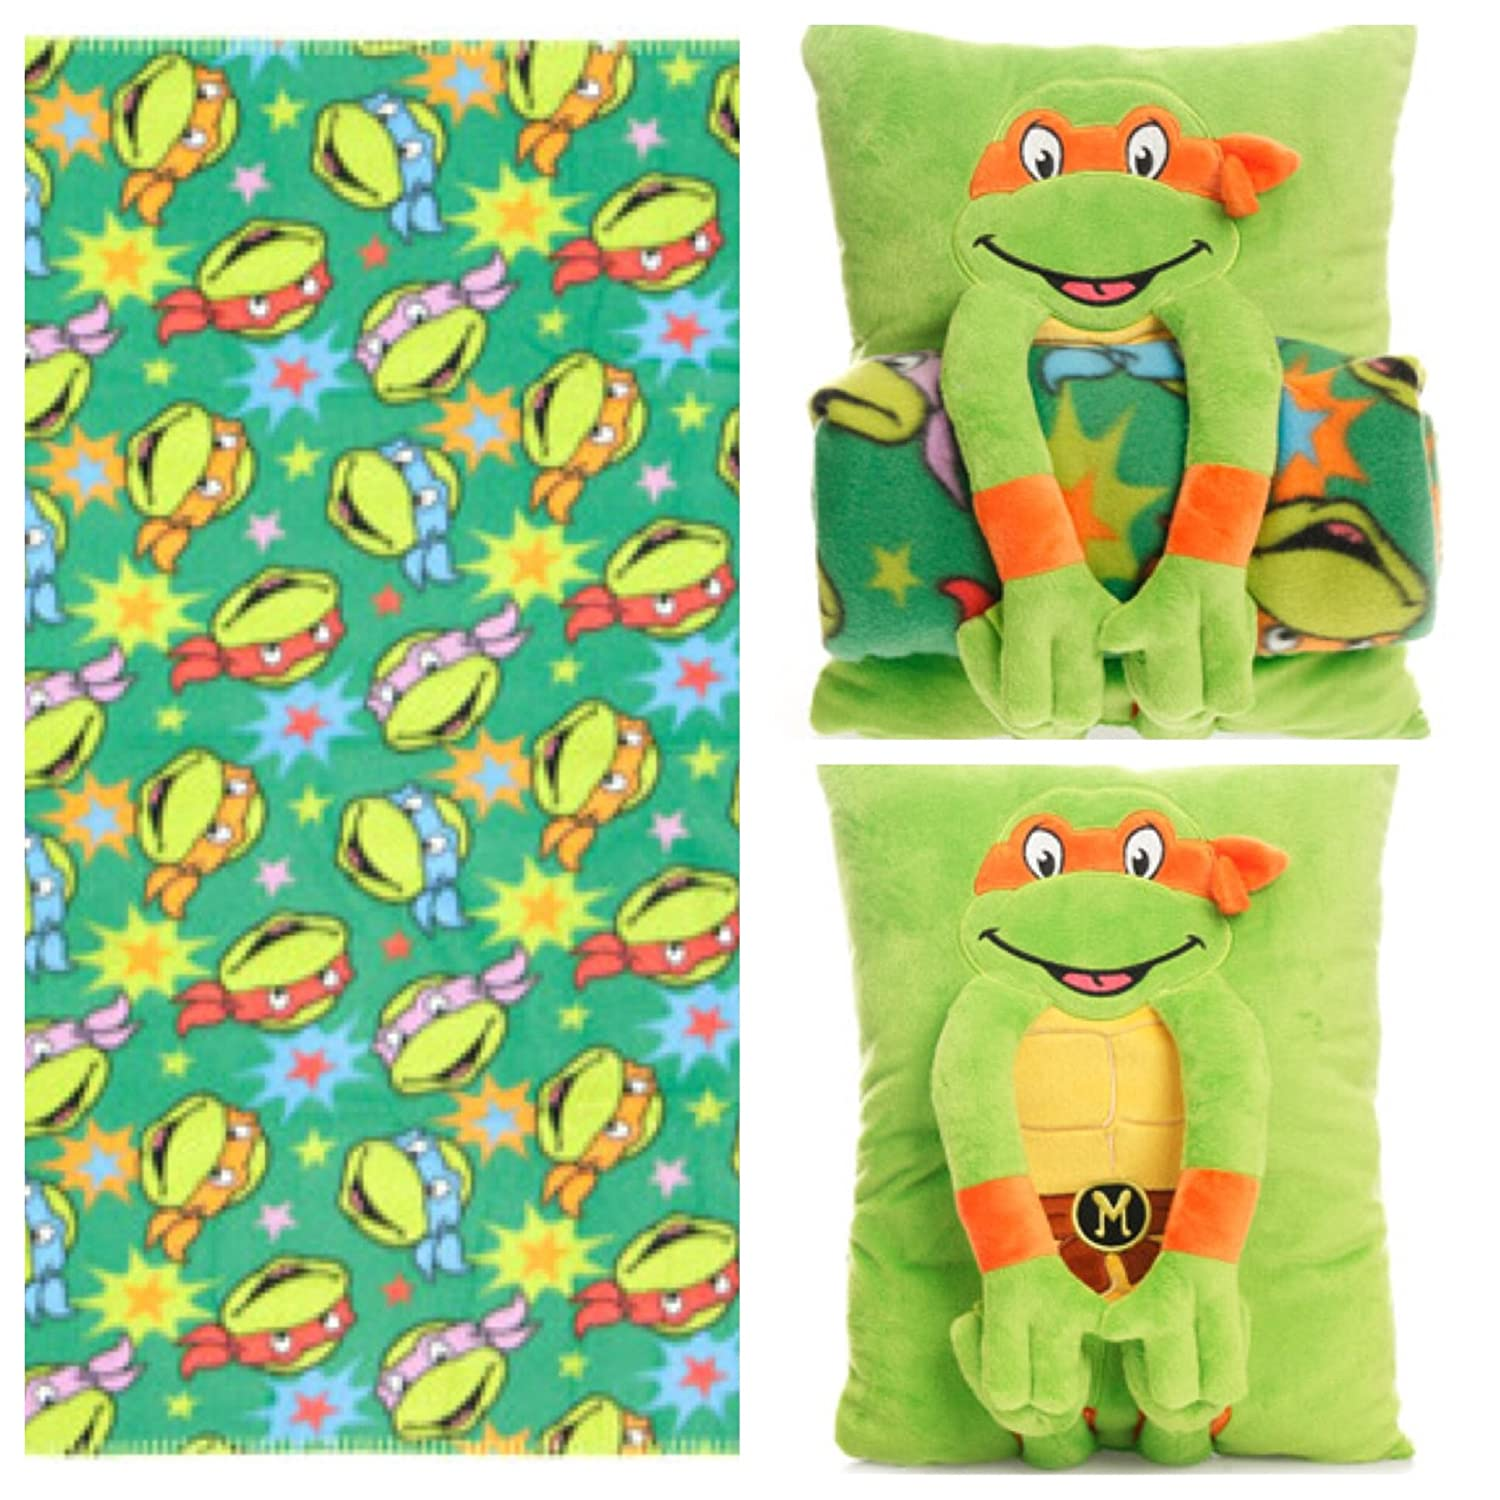 Nickelodeon Teenage Mutant Ninja Turtles Cuddle Time Snuggle Buddy Pillow / Blanket Set teenage mutant ninja turtles action figure 6 pcs set decoration collection gift